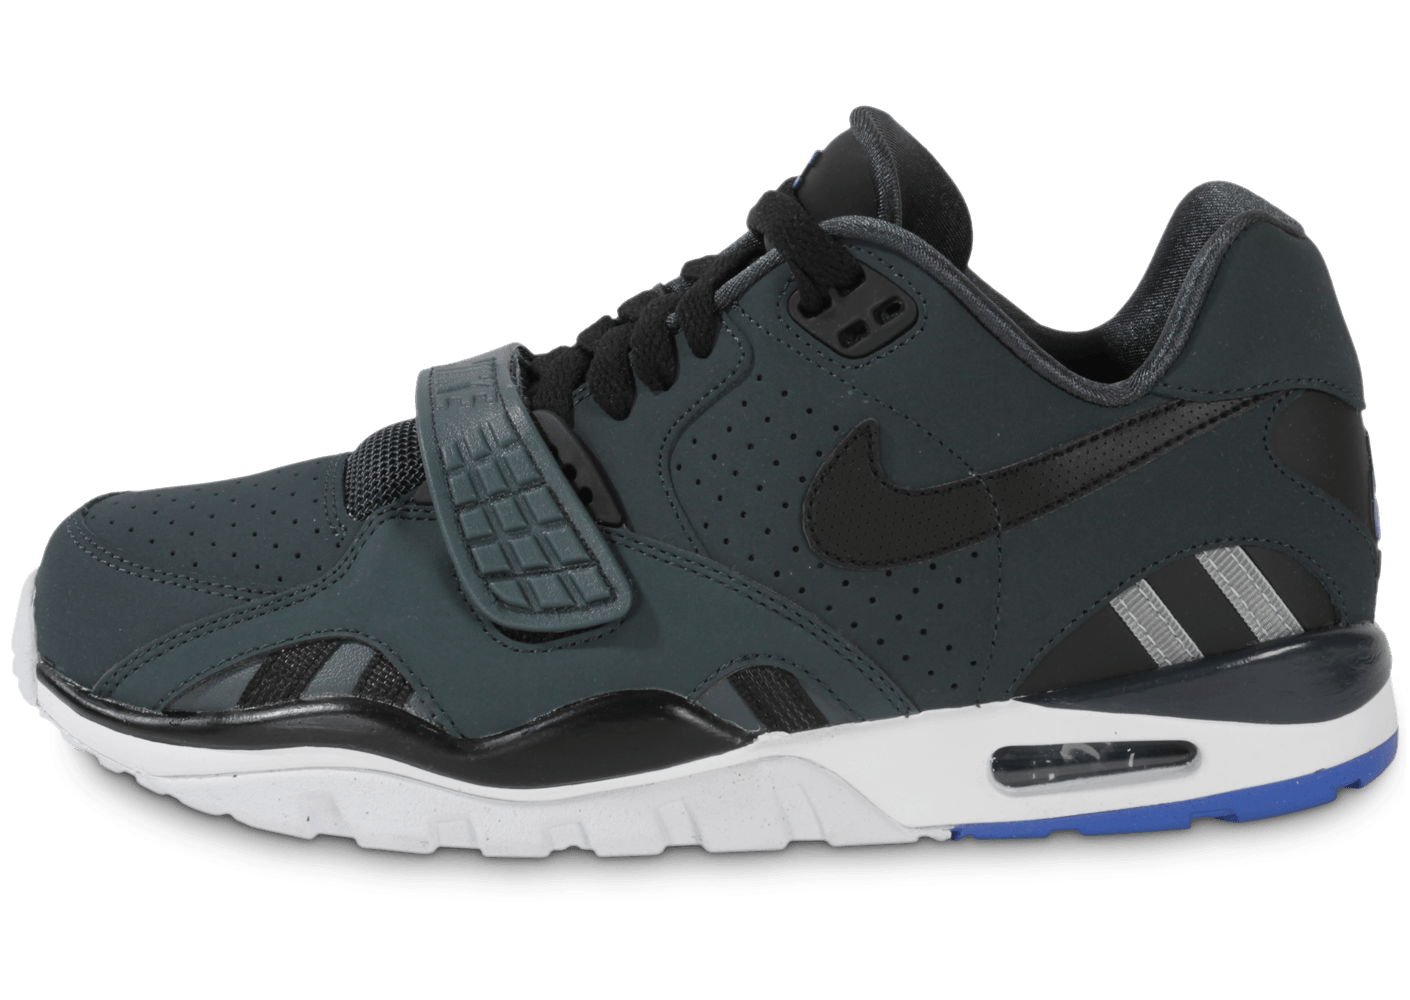 sports shoes 271c7 93ed3 Nike Air Trainer Sc Ii Low Noire - Chaussures Baskets homme - Chausport